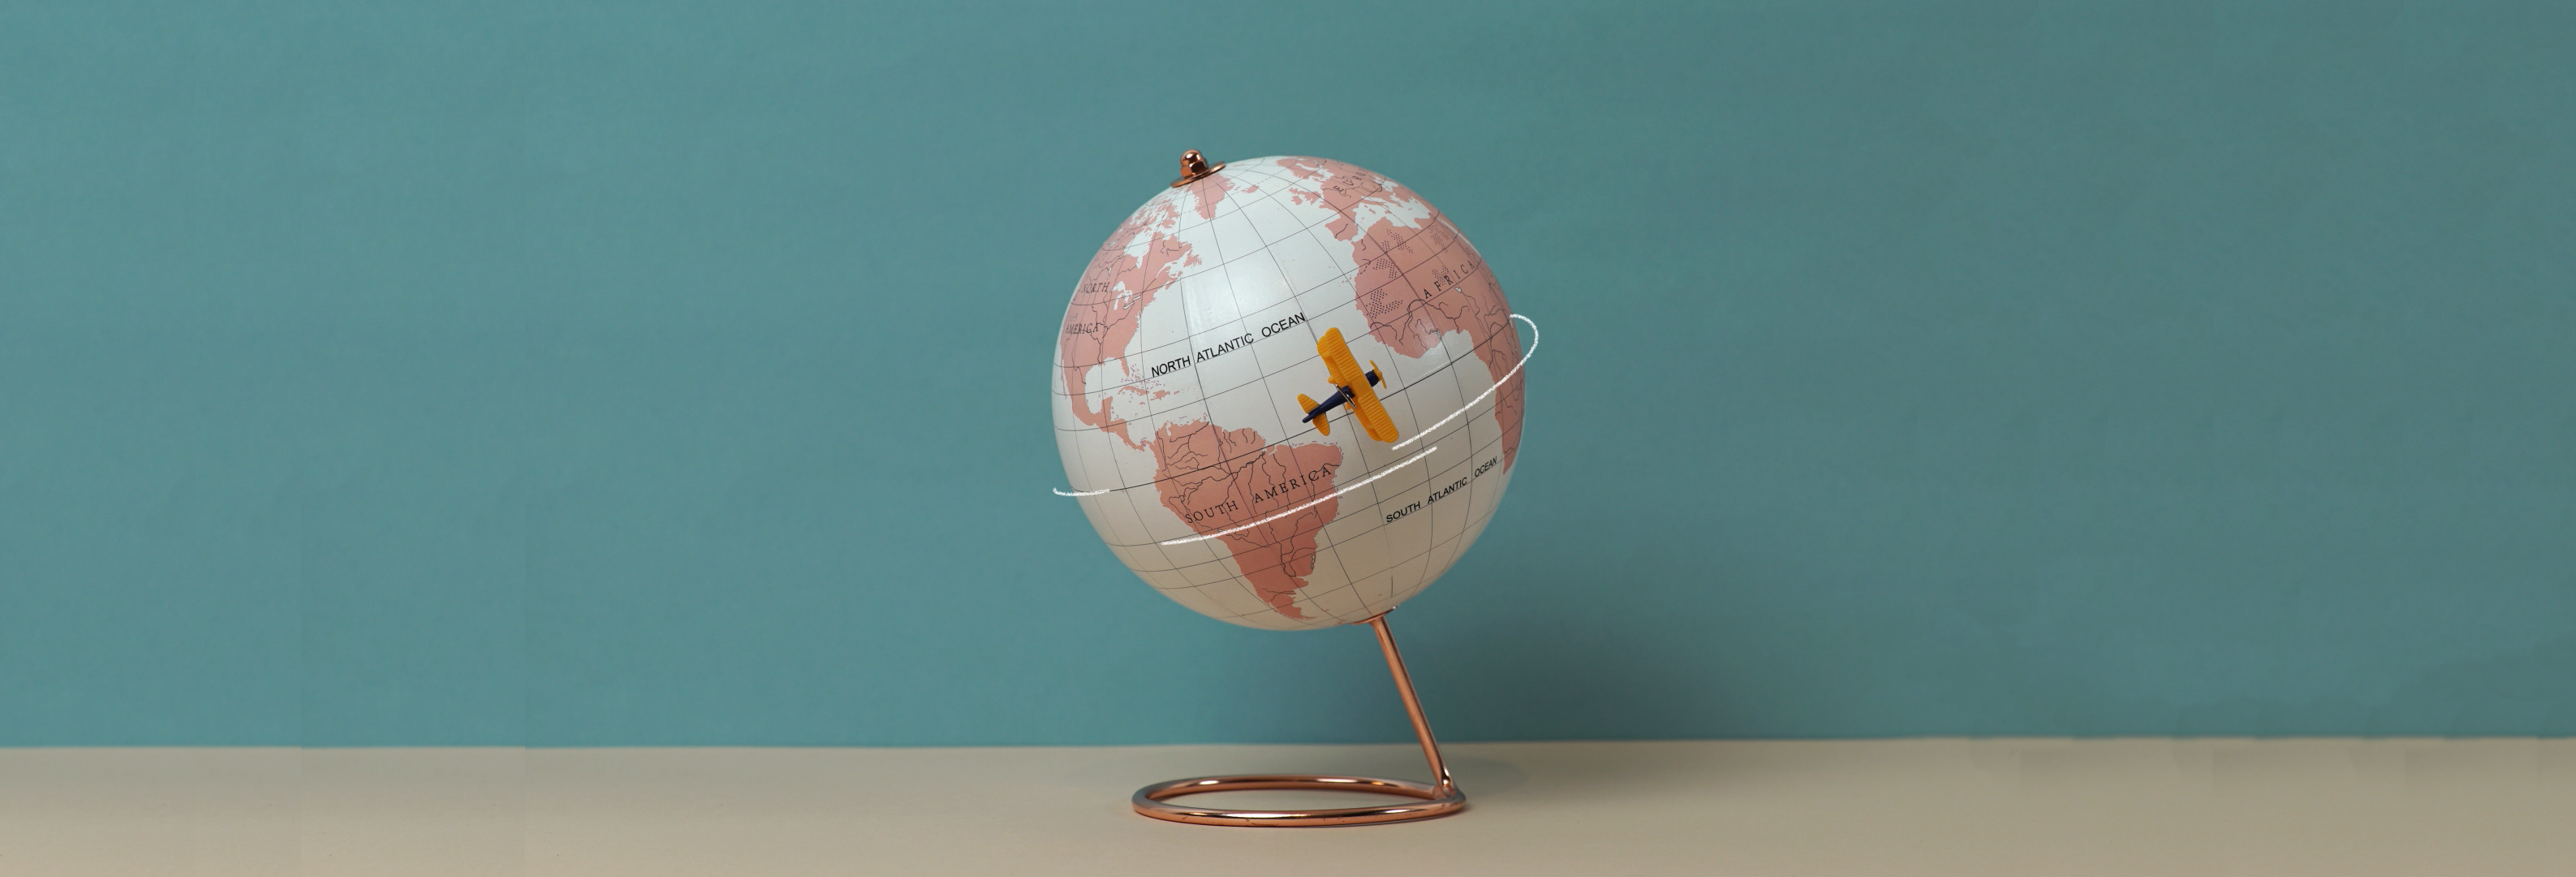 image of globe with toy airplane flying by